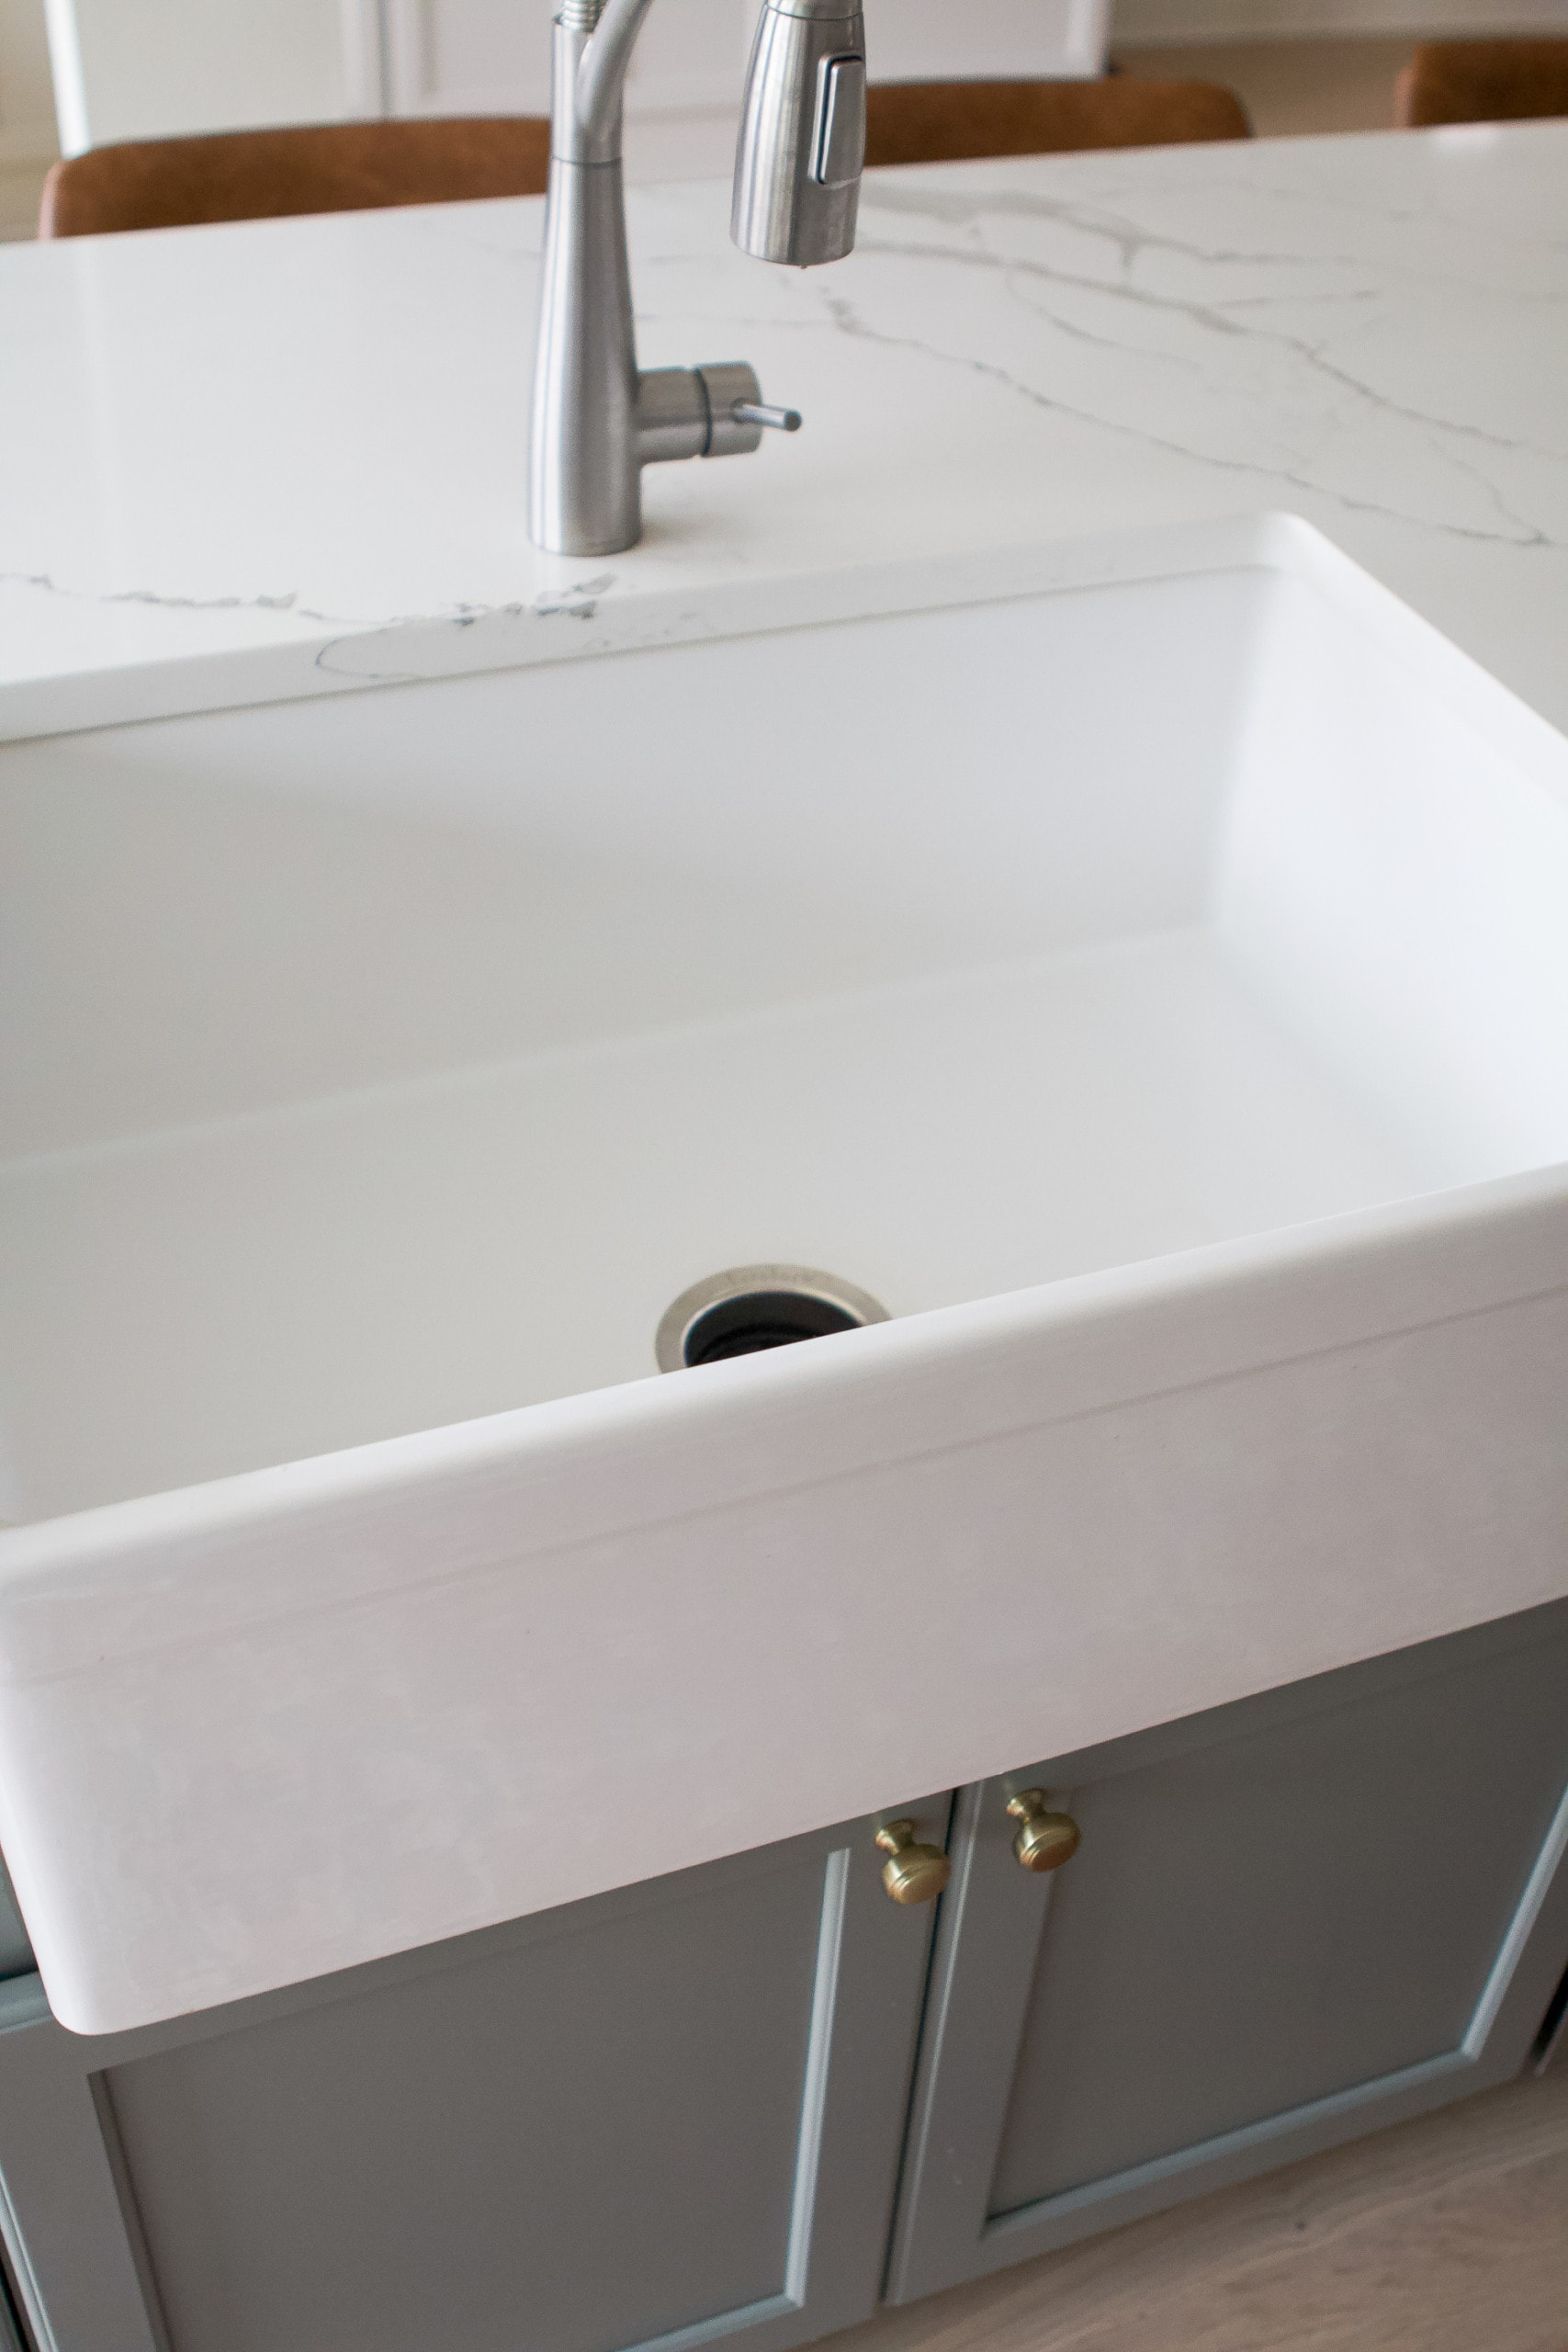 Our farmhouse sink from Elkay in our kitchen reveal video